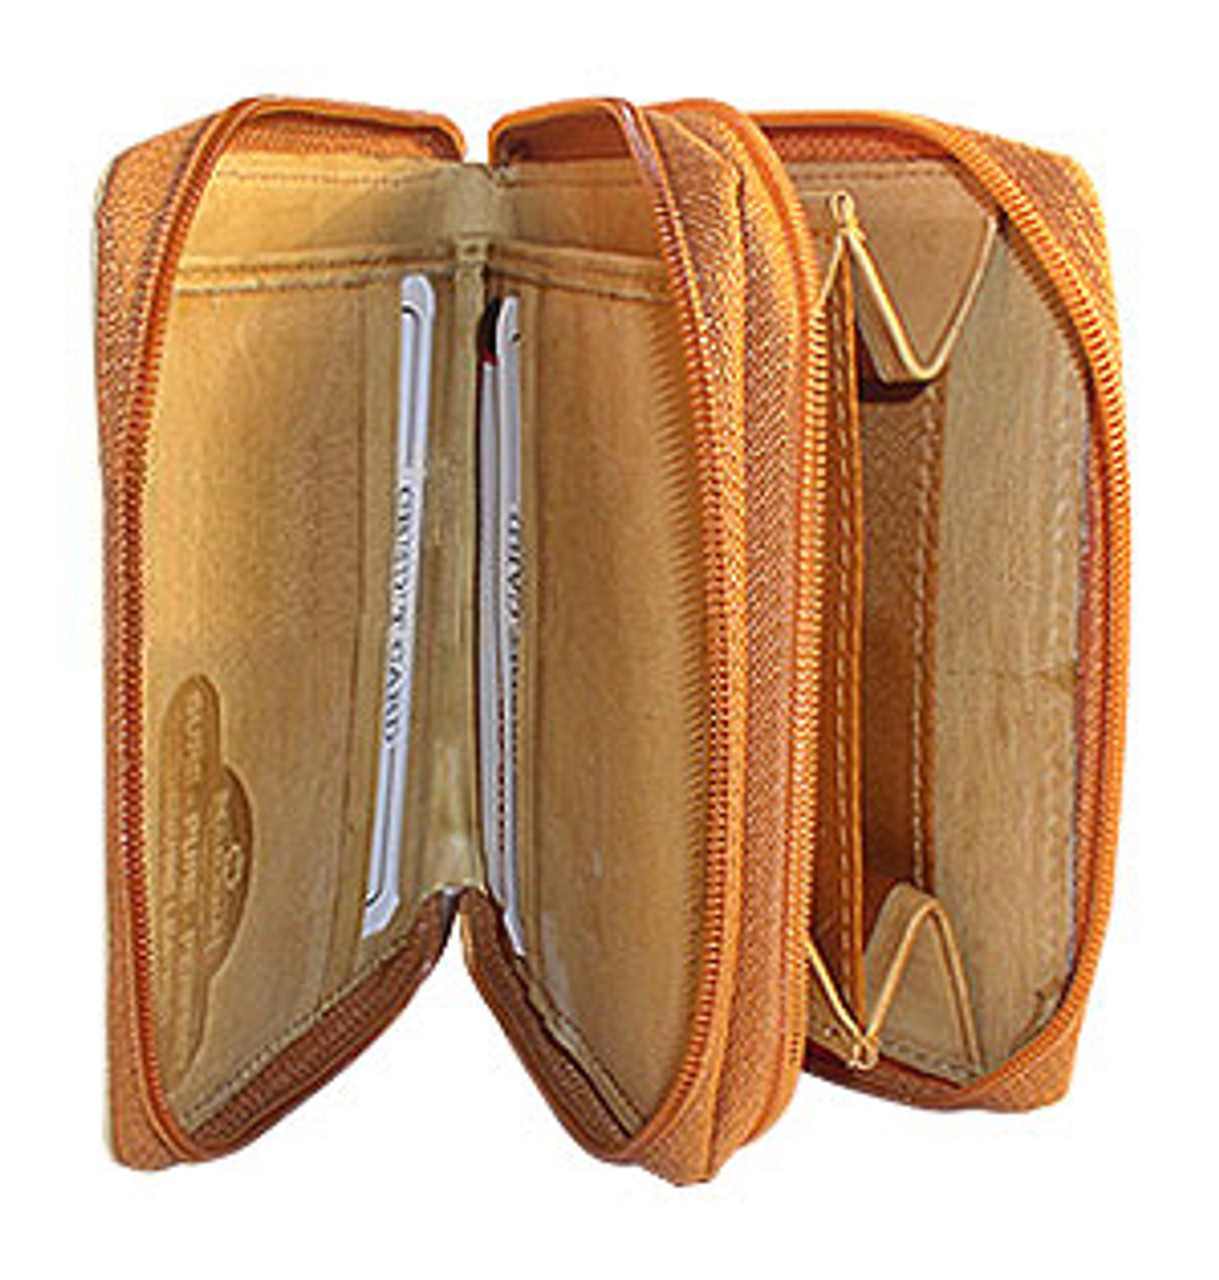 Tan Leather Credit Card Holder 4.75 x 3.75 inch Wallet